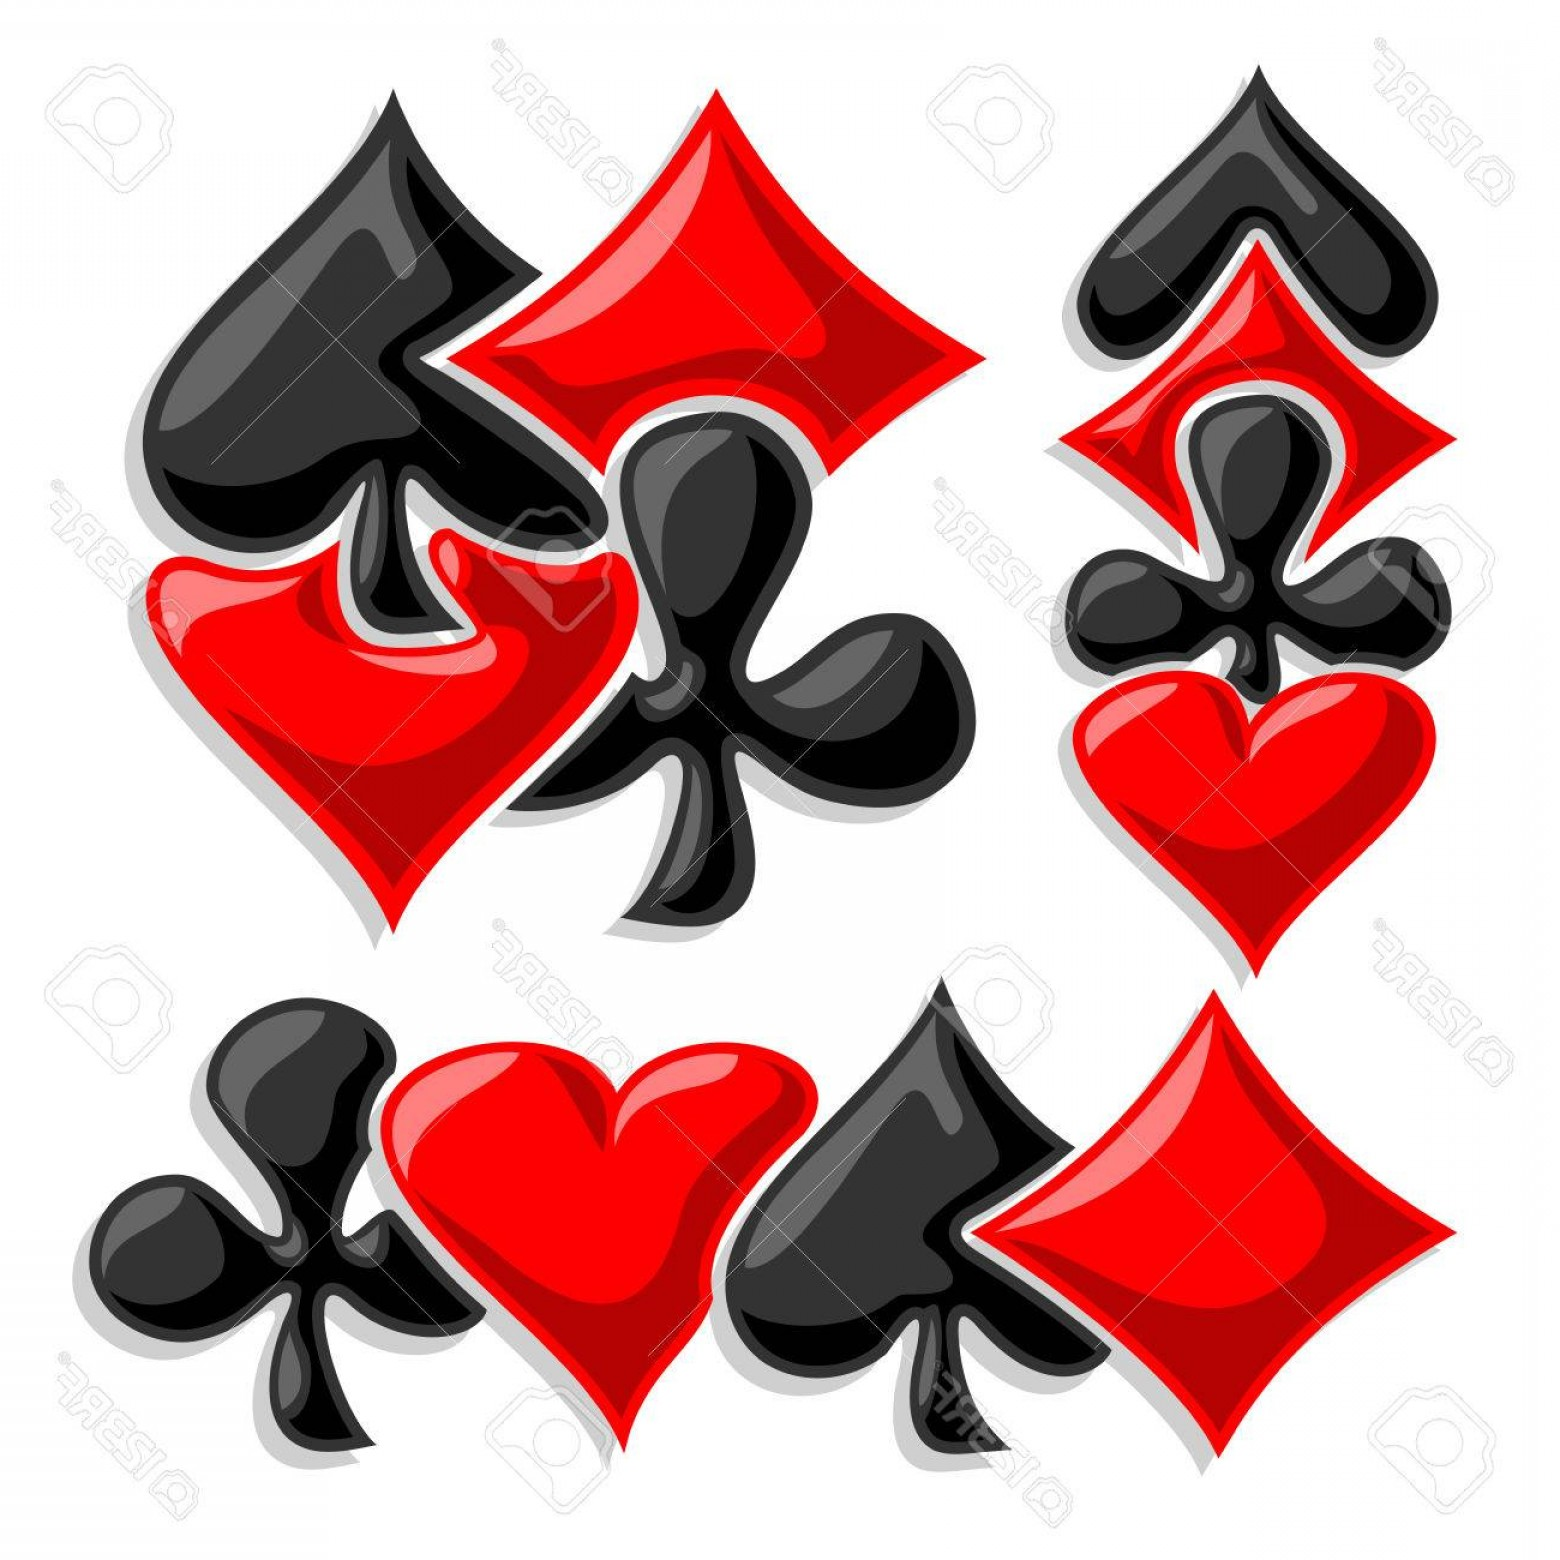 1560x1560 Photostock Vector Vector Cards Suits Three Abstract Set Gamble